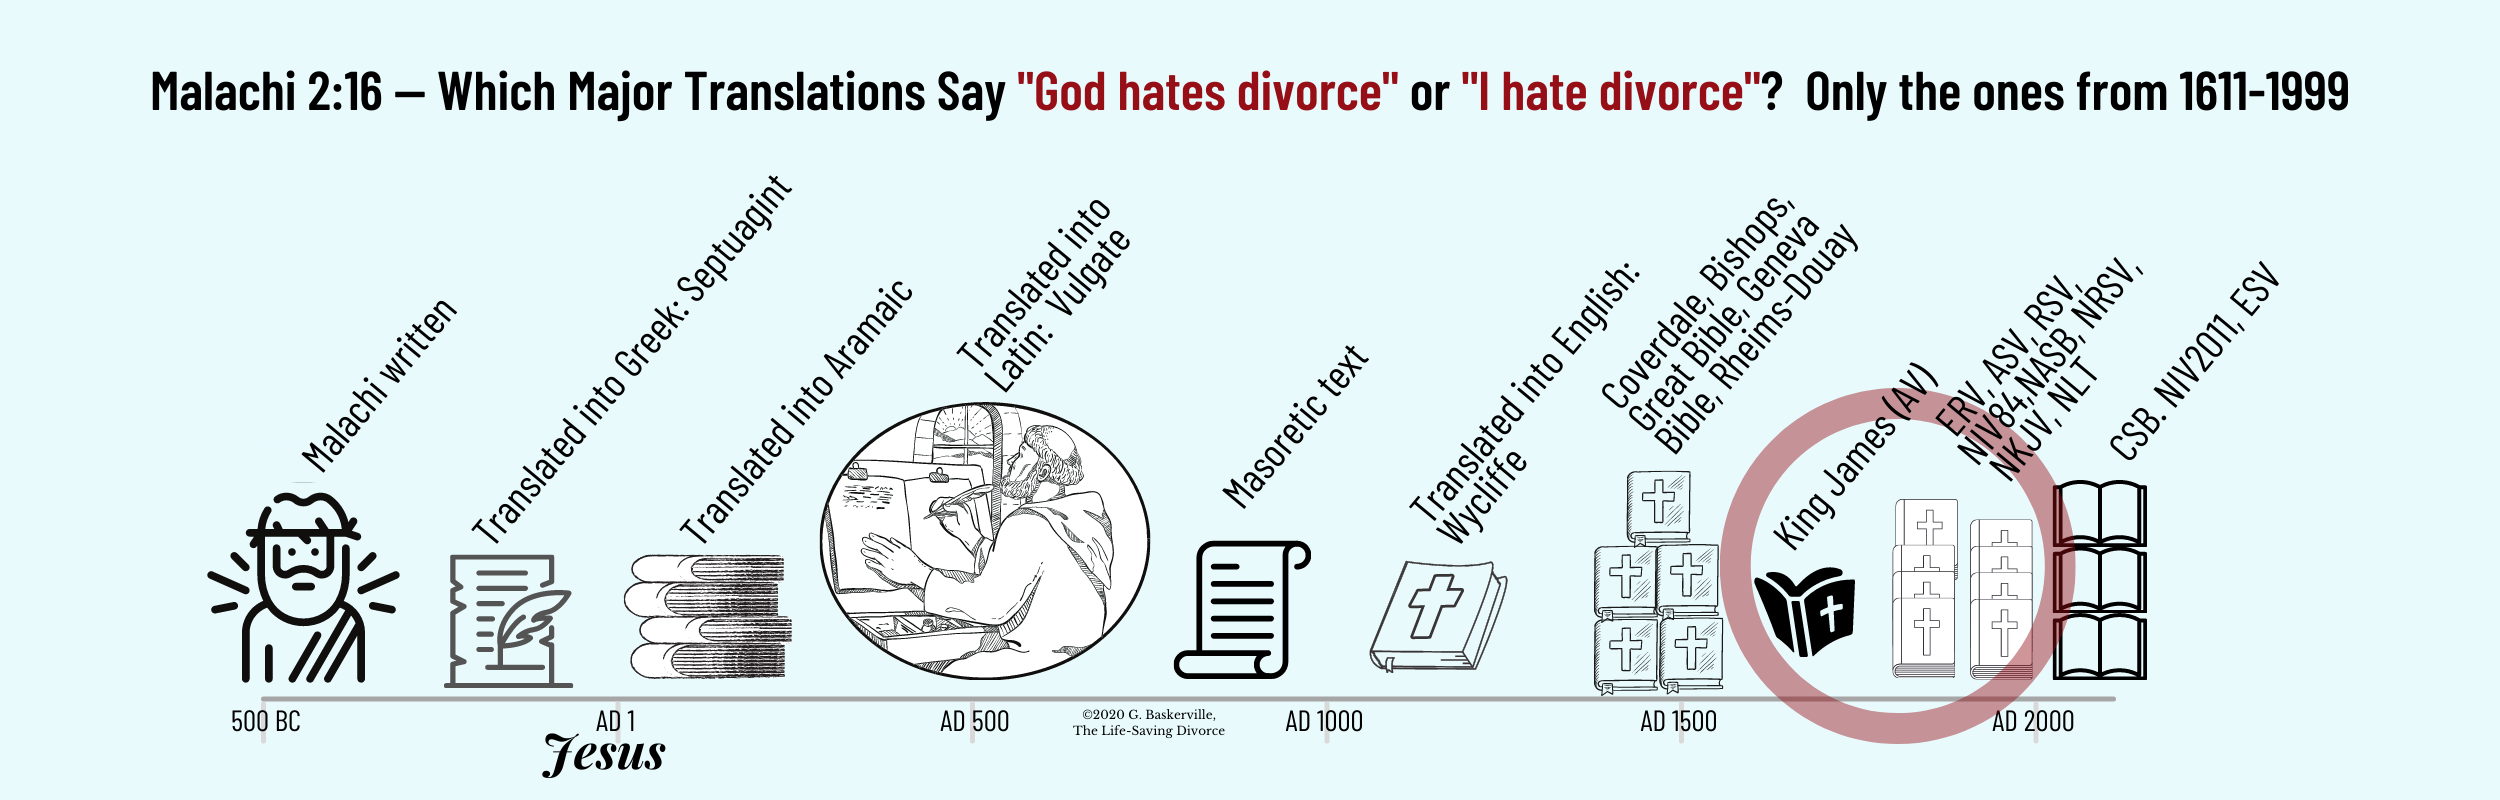 """This infographic shows that from 450 BC to AD 1600, no known Bible translation interpreted Malachi 2:16 at """"God hates divorce"""" or """"I have divorce."""""""